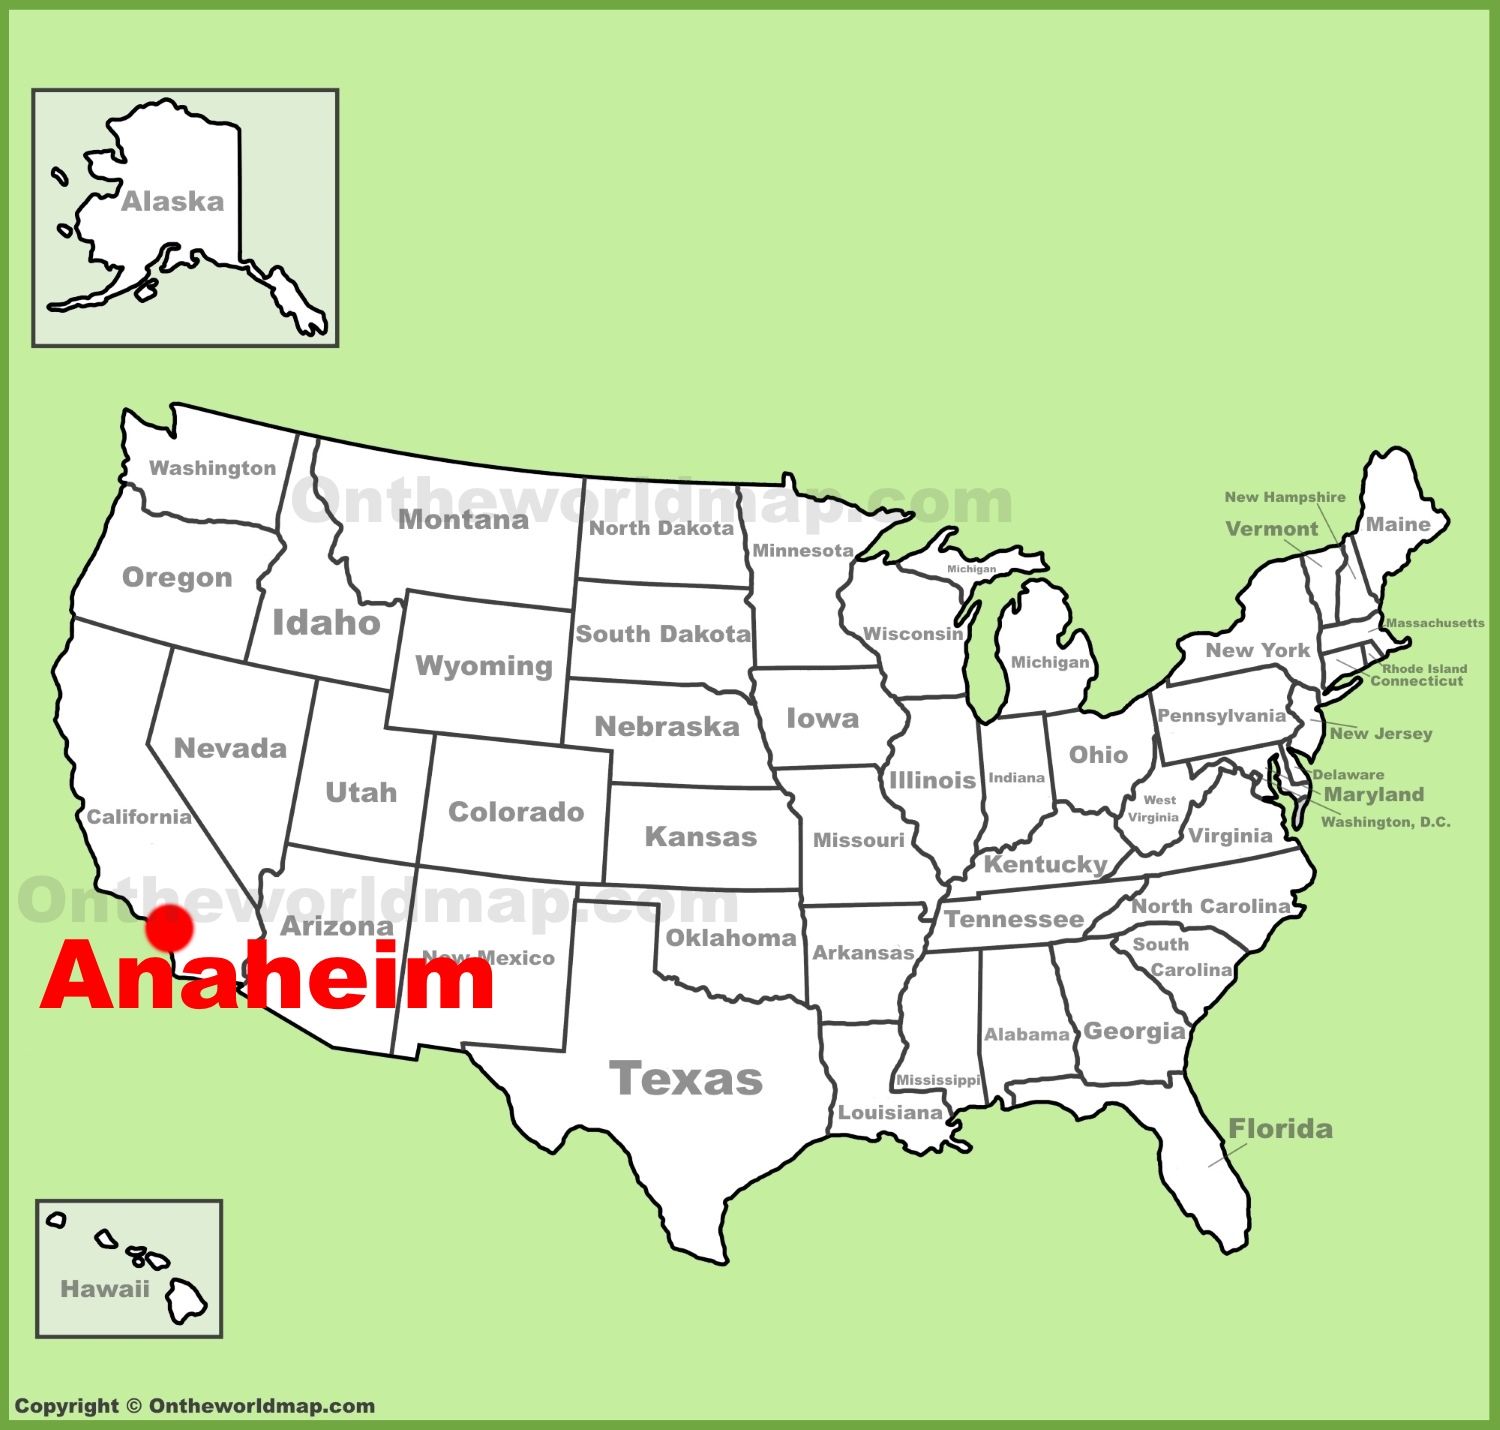 Anaheim location on the U.S. Map on map of crystal cathedral, map of orange, map of staples center, map of venice beach, map of pope valley, map of copperopolis, map of lawndale, map of thousand palms, map of east hollywood, map of willits, map of los angeles, map of el toro, map of little saigon, map of boulevard, map of fashion valley, map of downtown disney district, map of disneyland, map of leucadia, map of marin city, map of alpine meadows,